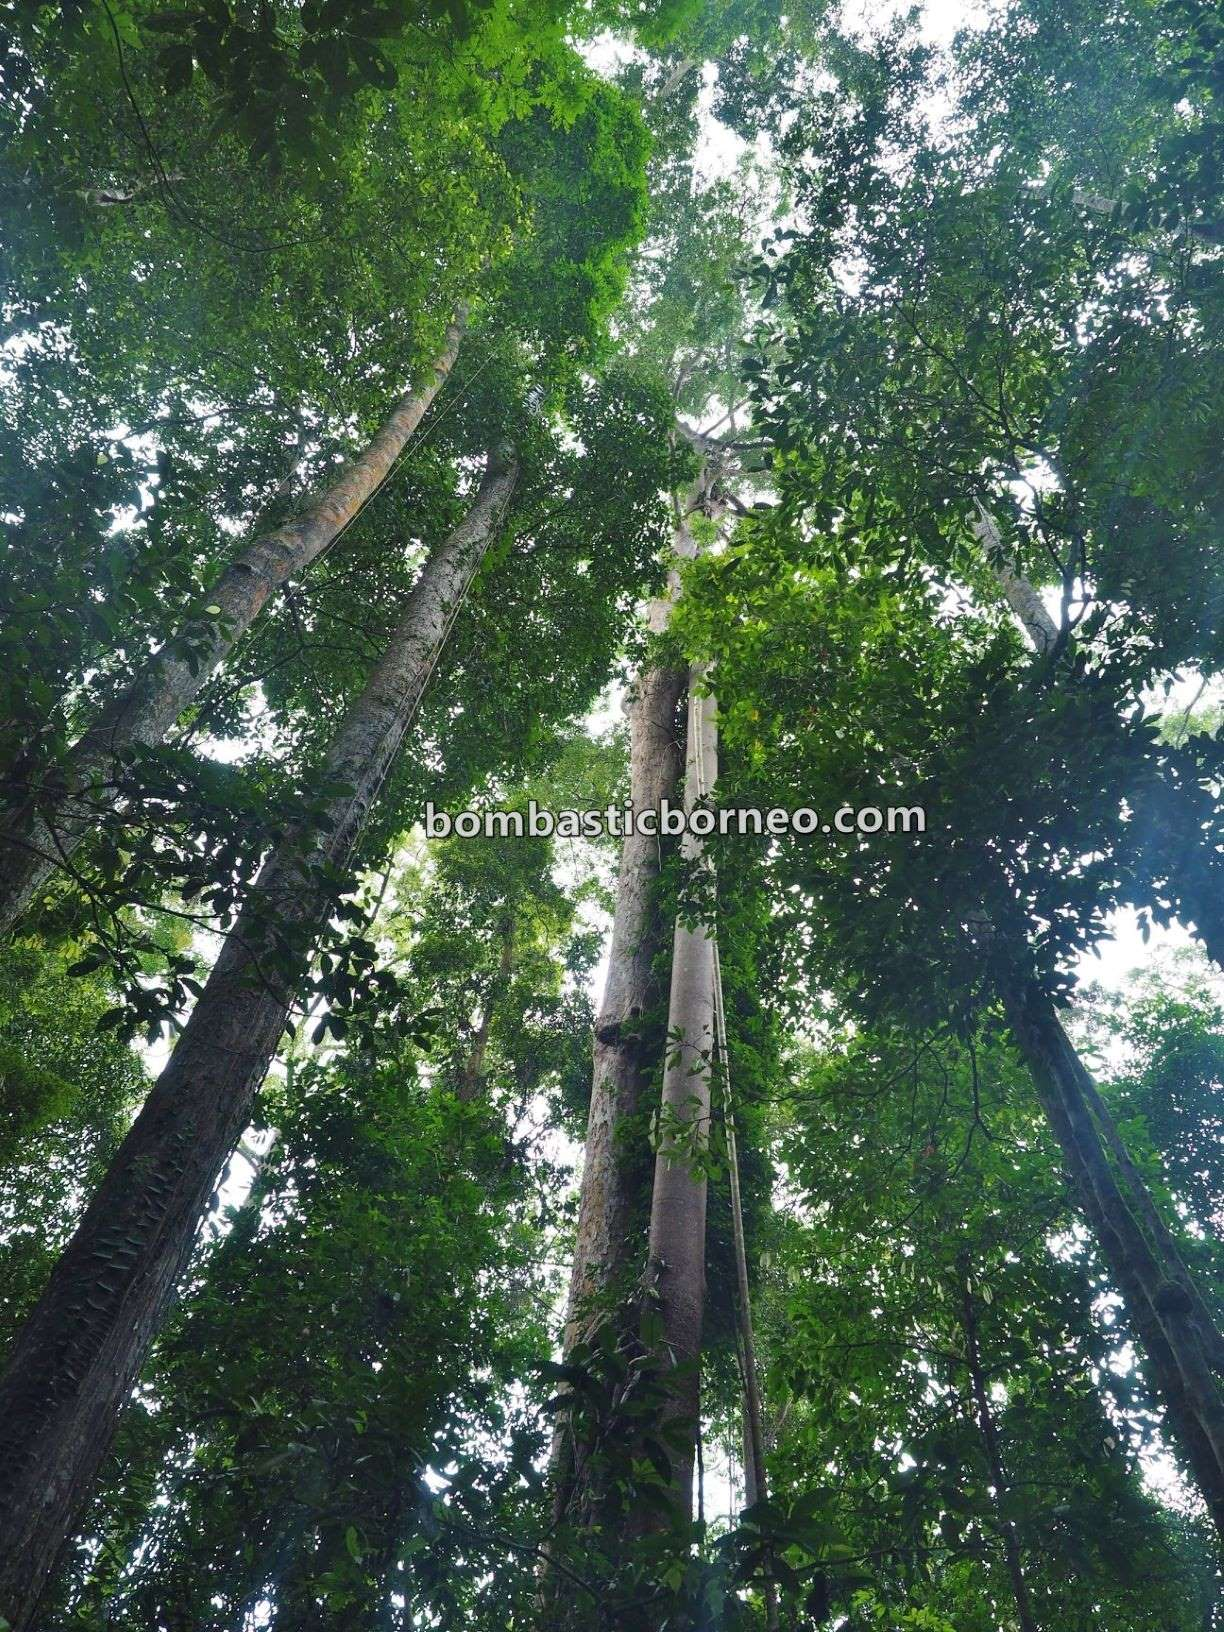 Pusat Sejadi Bukit Gemok, Gemok Hill Forest Reserve, rainforest, adventure, outdoor, hiking, conservation, exploration, destination, Malaysia, tourist attraction, travel guide, 穿越婆罗洲游踪,马来西亚沙巴, 斗湖森林保护区